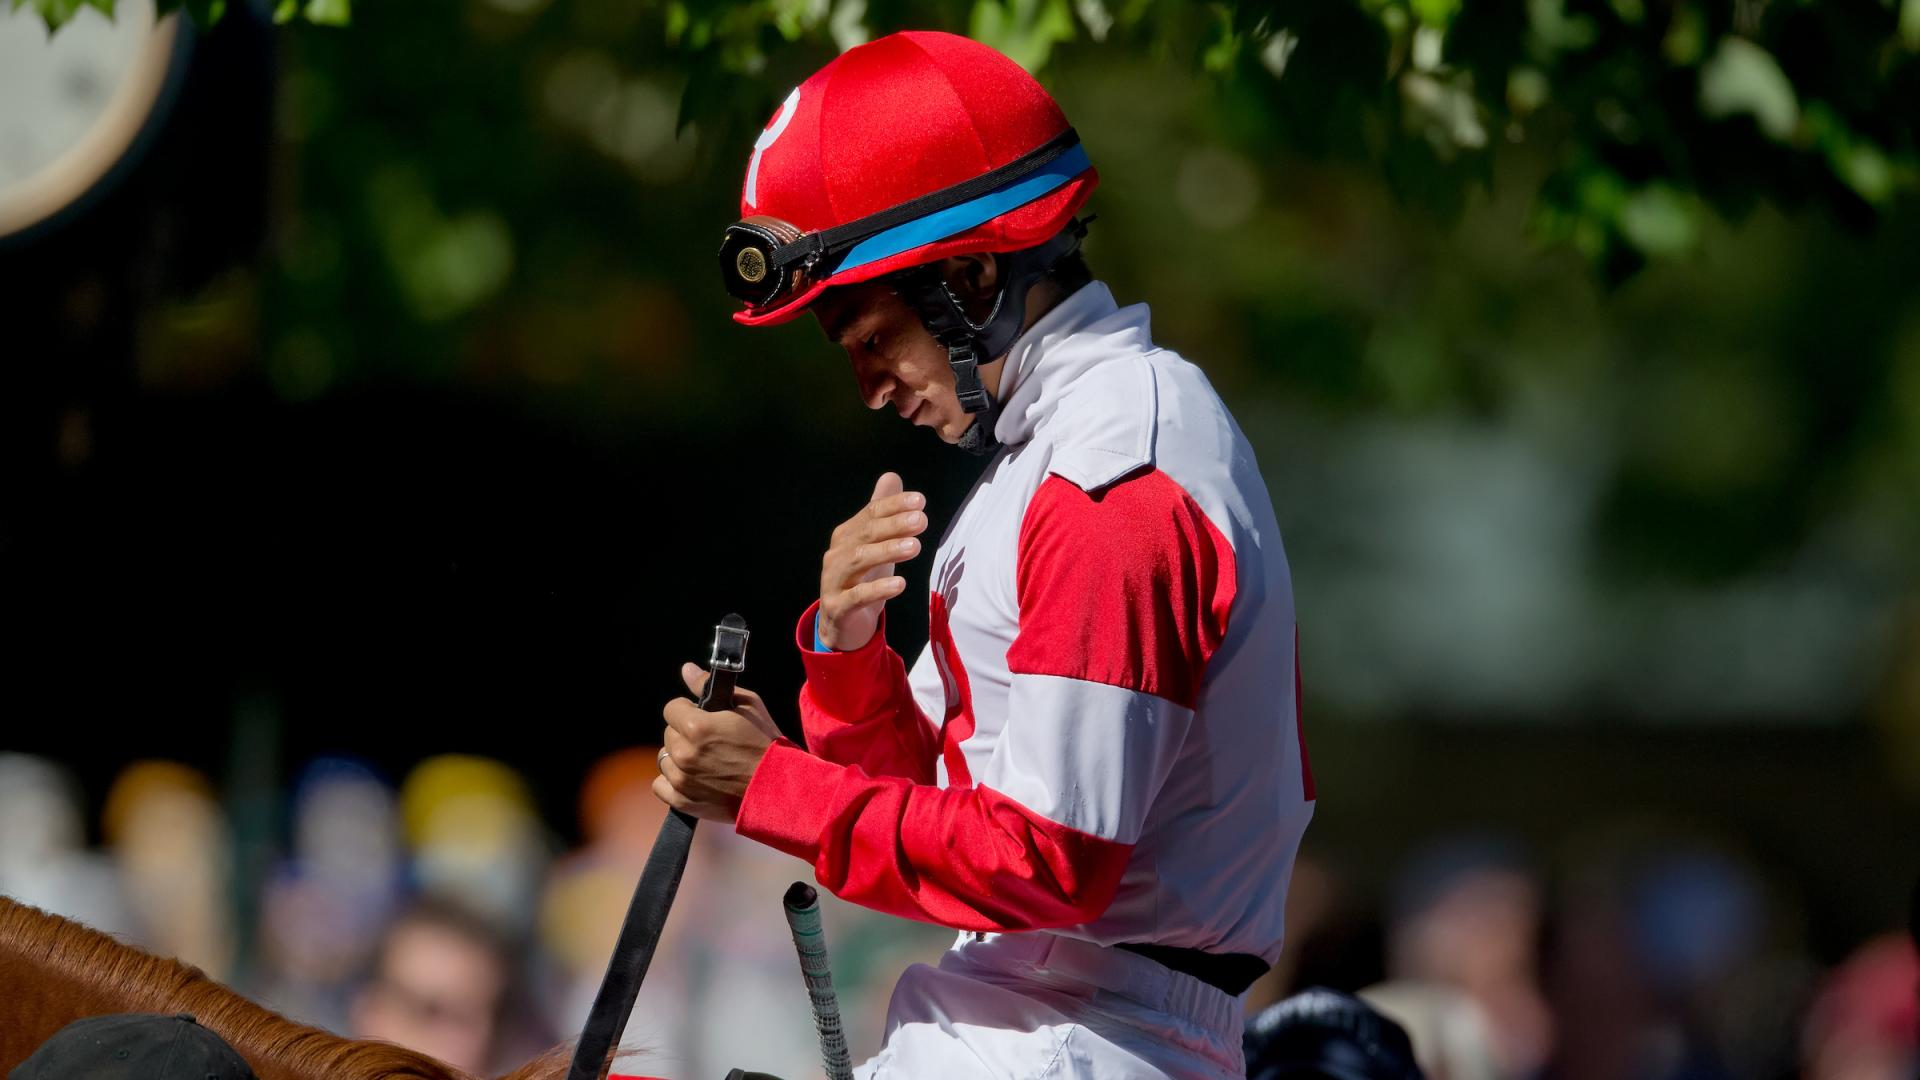 Jockey at Keeneland